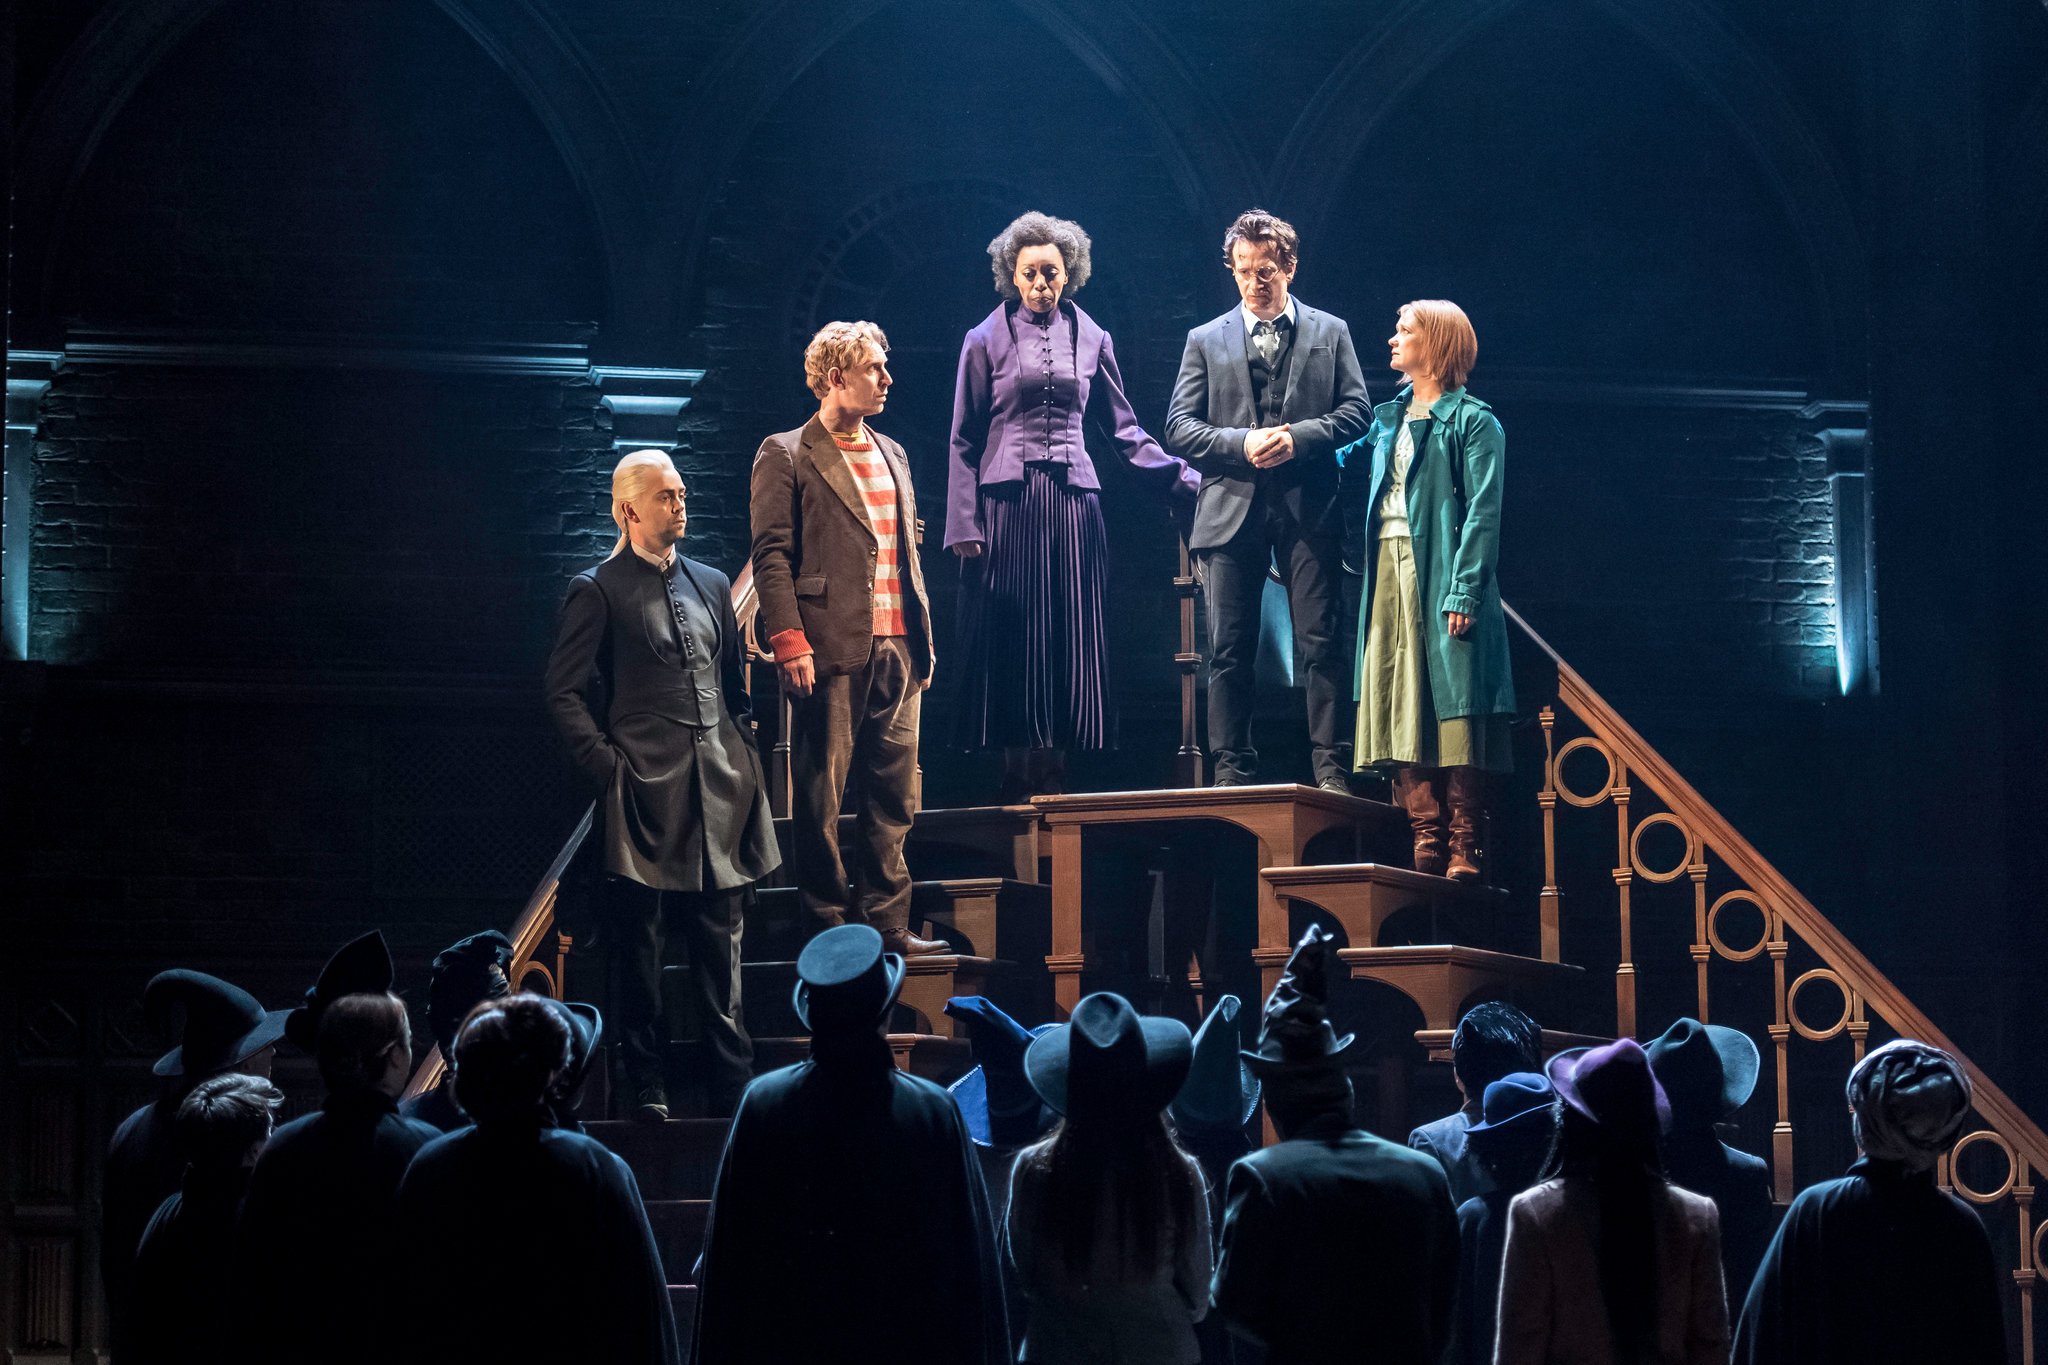 Harry Potter and The Cursed Child - Part 1 & 2 (5/7 7:30PM & 5/8 7:30PM) at Lyric Theatre